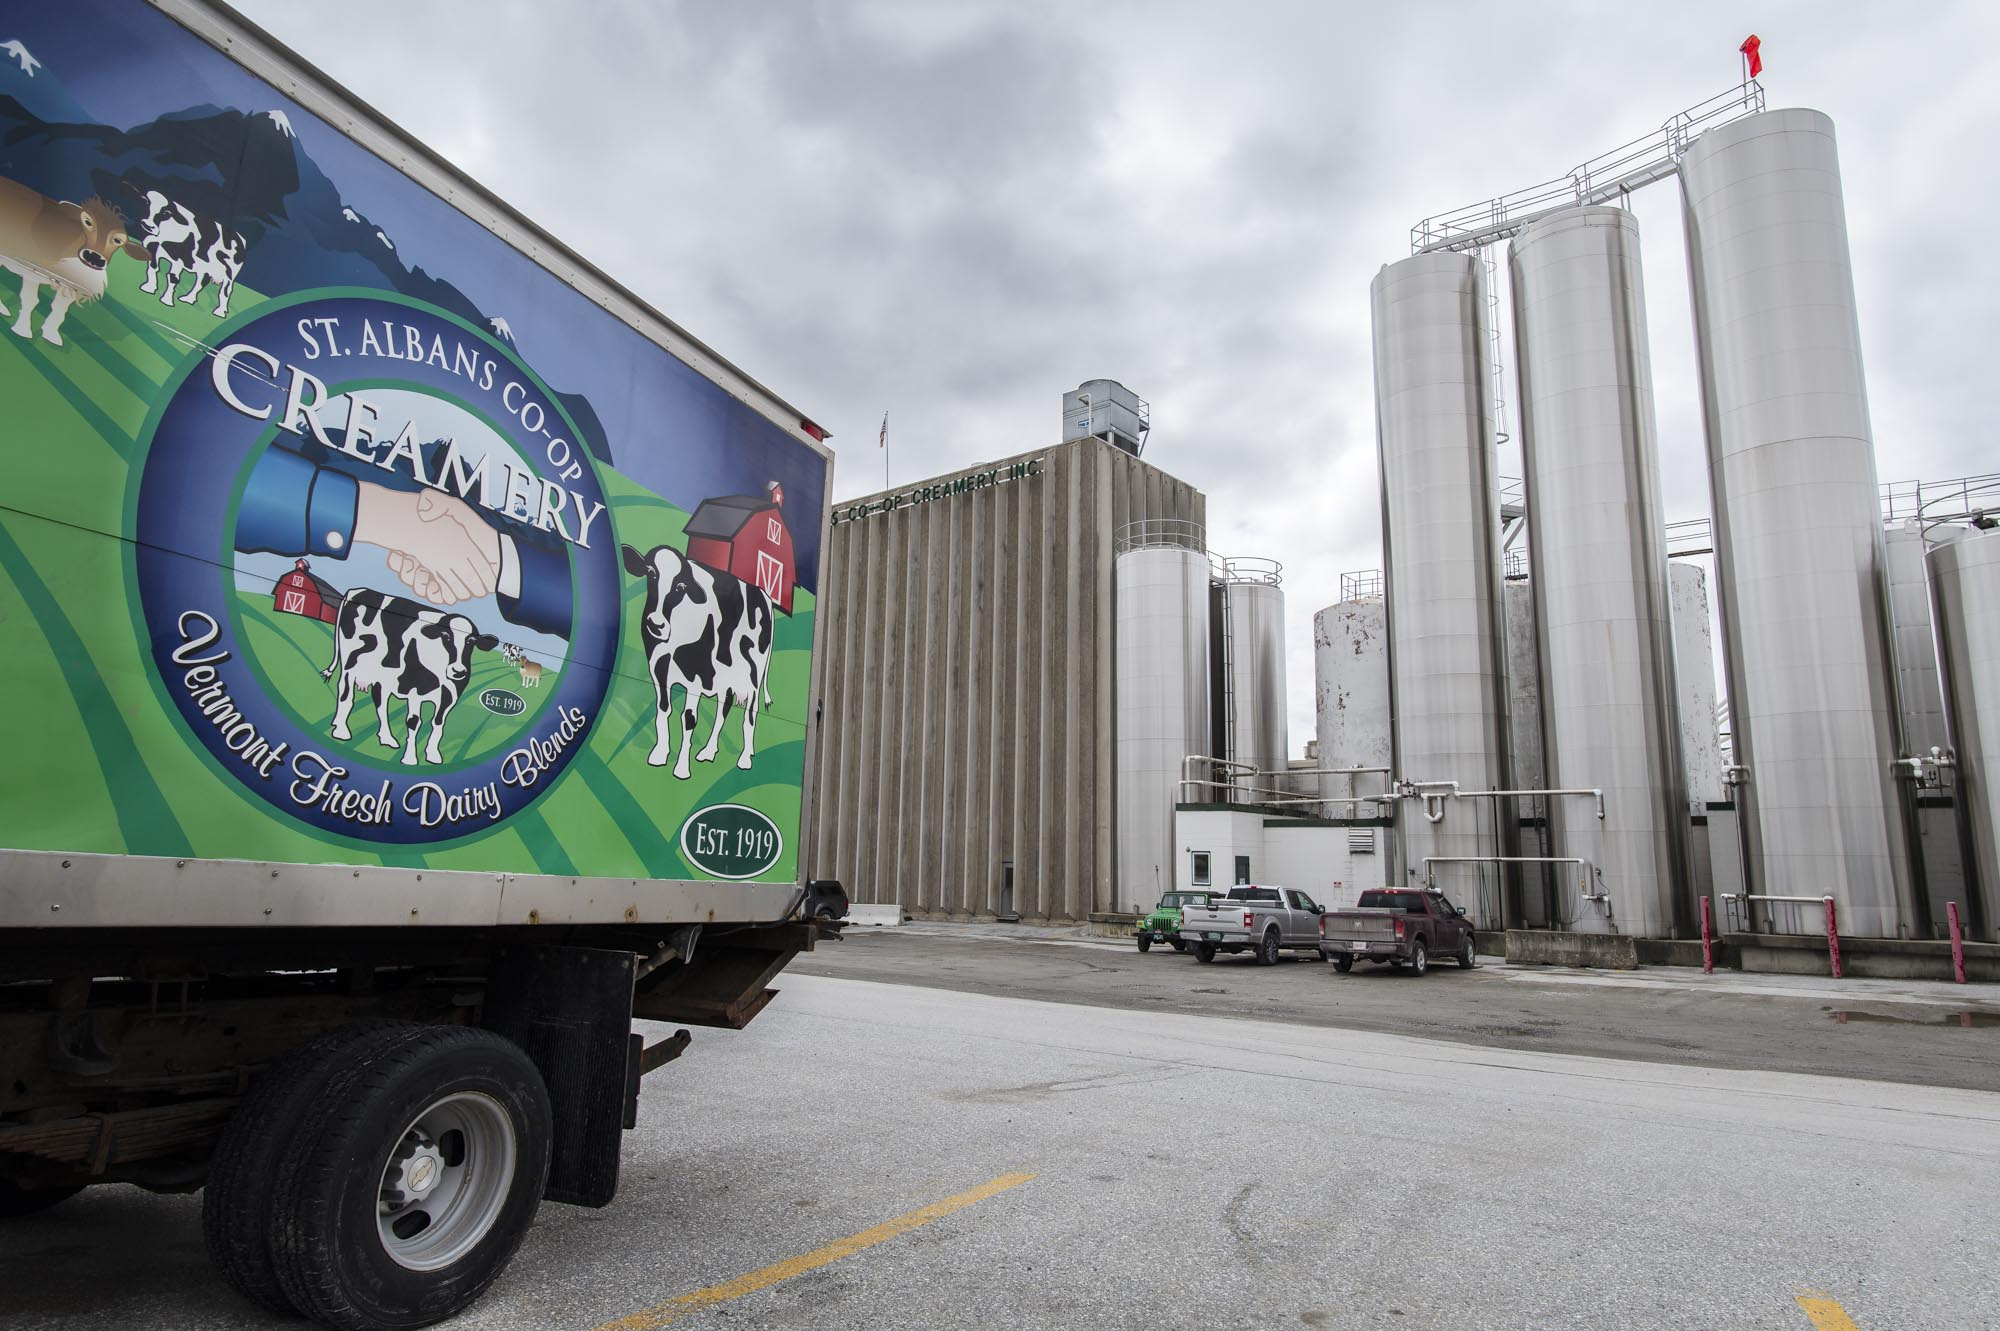 St. Albans Co-op Merger Said To Have No Impact On Dairy